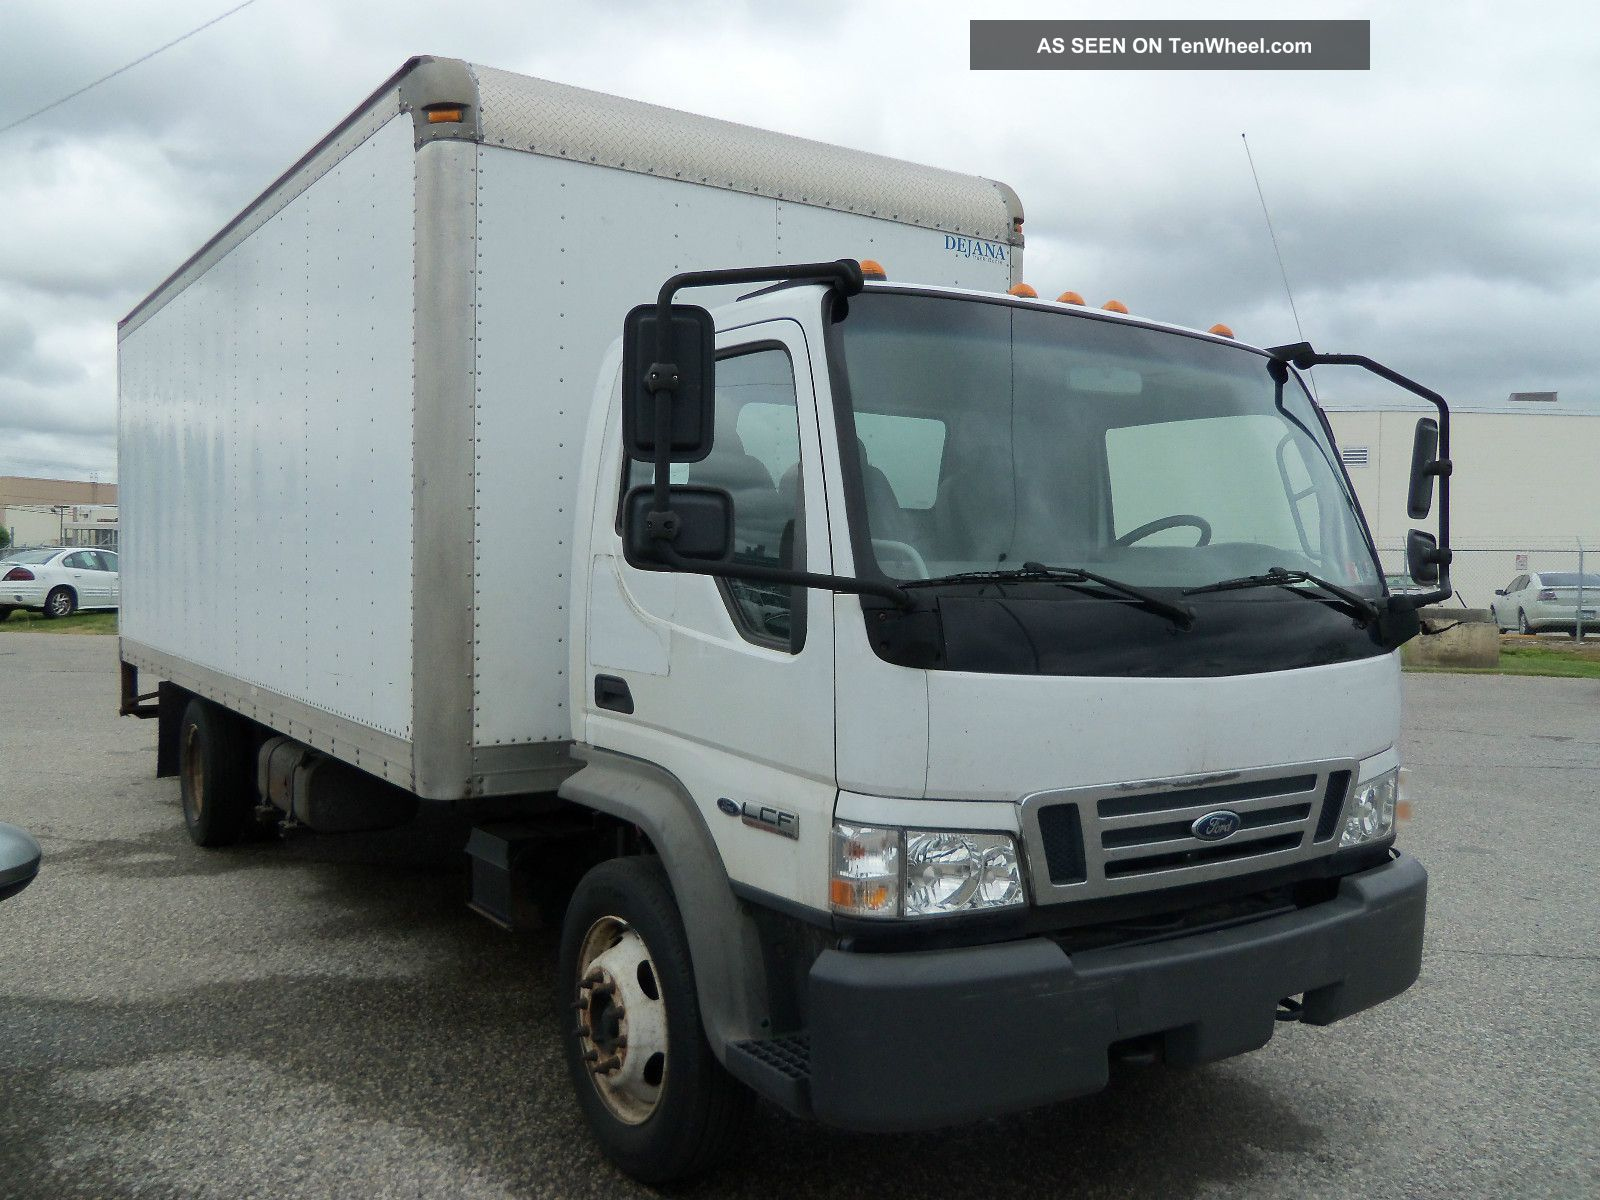 2007 ford lcf box truck rh tenwheel com 2007 Ford LCF Box Truck 2007 Ford LCF Engine Replacement